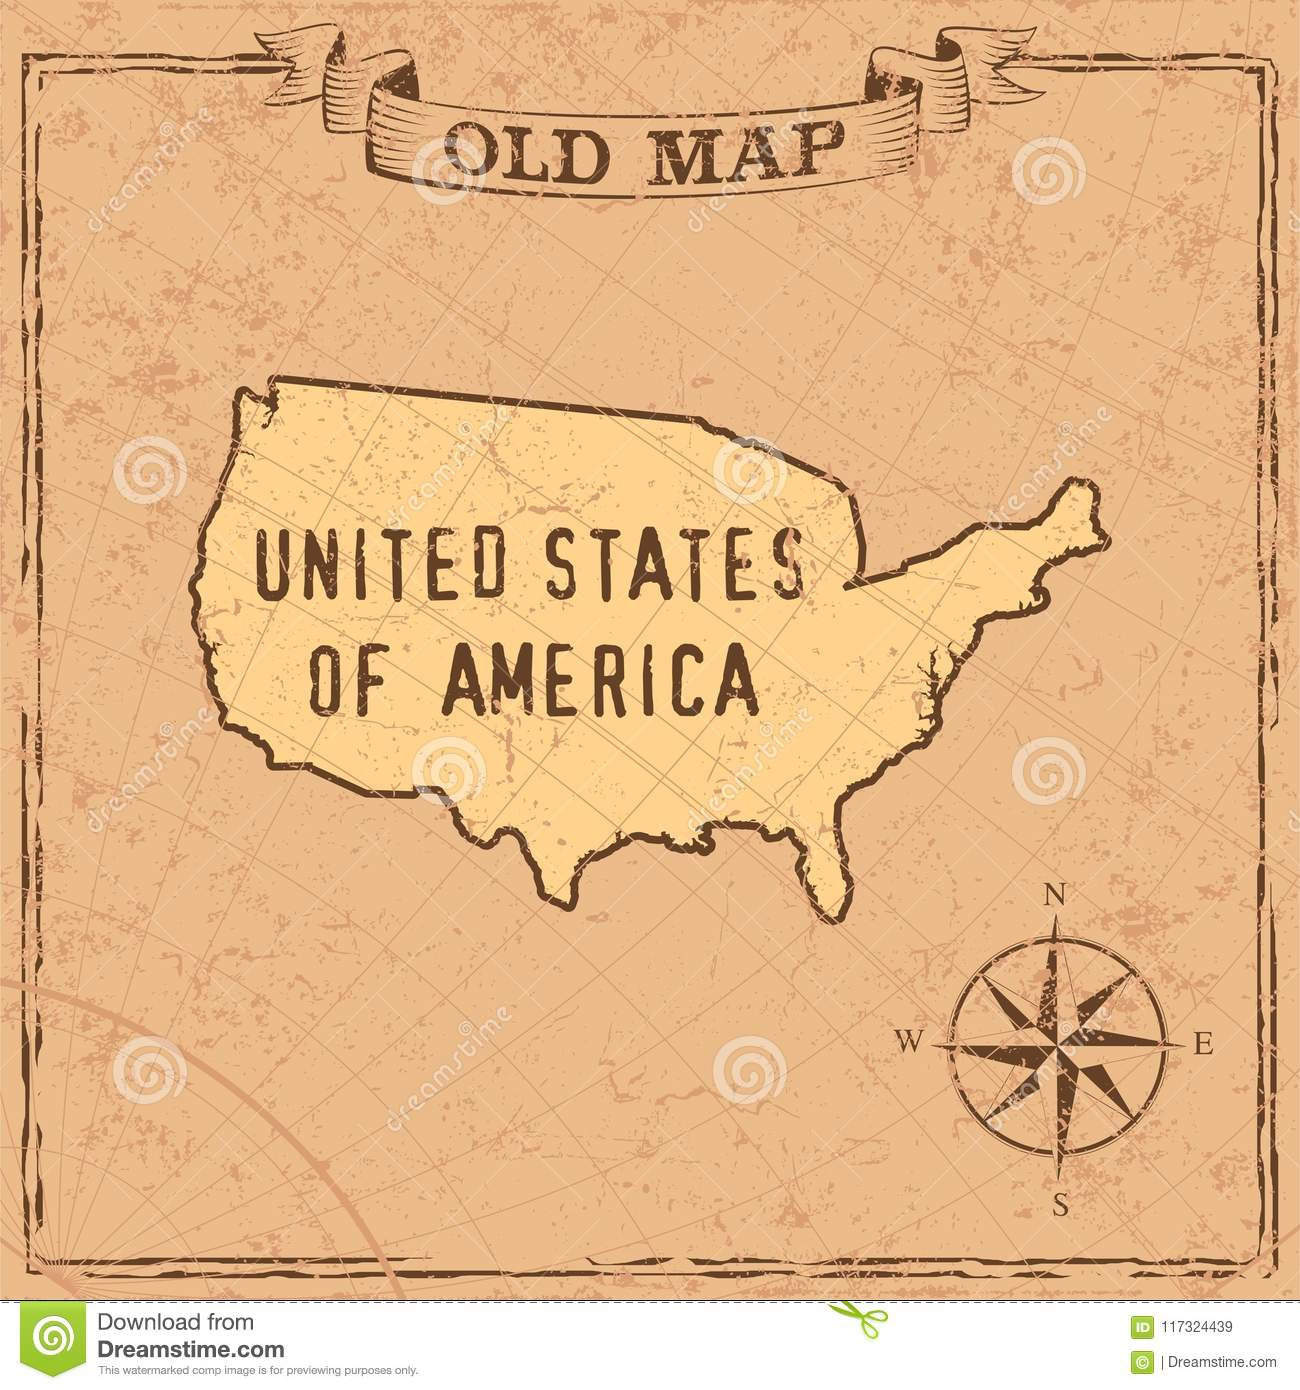 Old style USA map stock vector. Illustration of original ... on united states map poster, united states map color, united states map 1860,